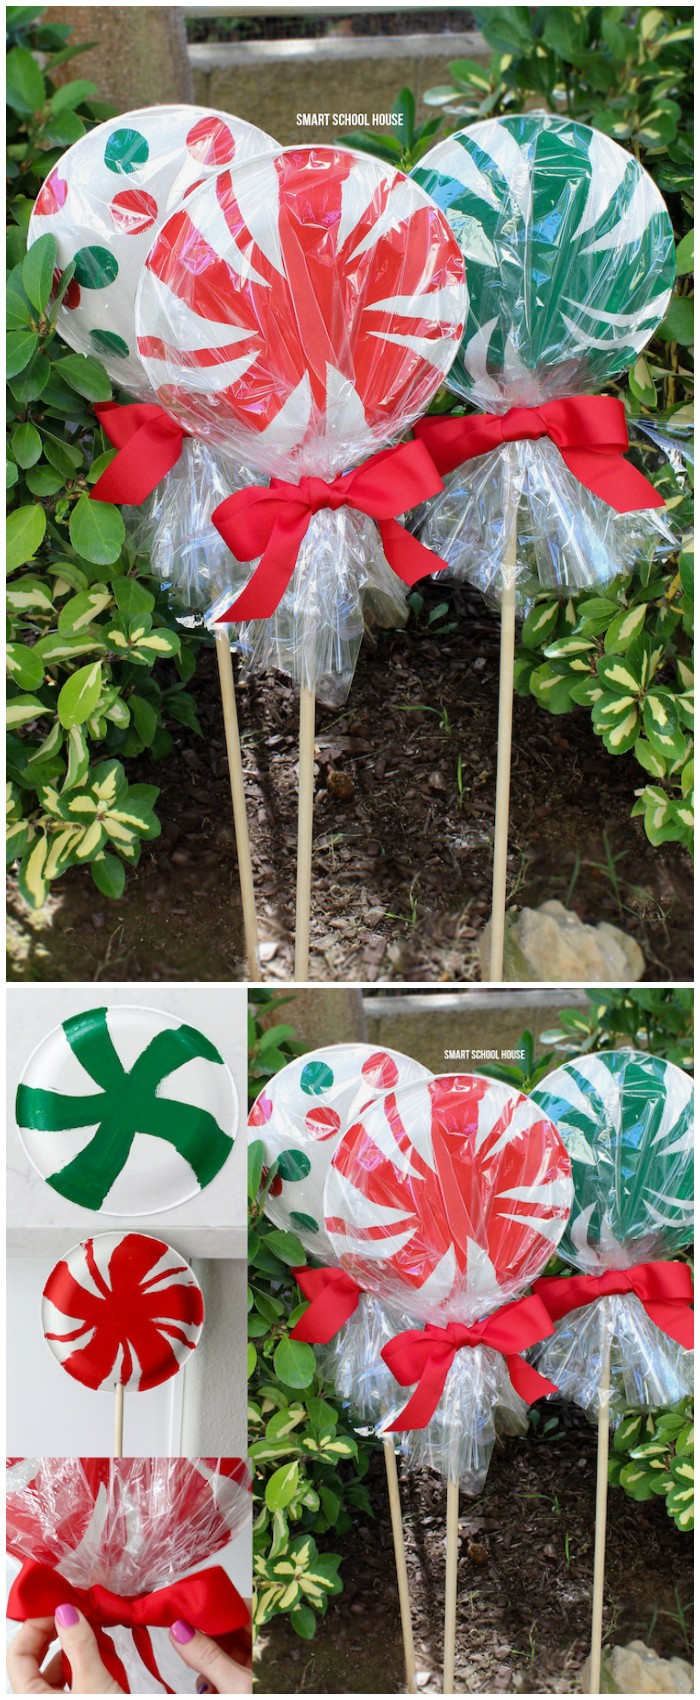 Cheap Diy Outdoor Christmas Decorations Lovely 21 Cheap Diy Outdoor Christmas Decorations • Diy Home Decor